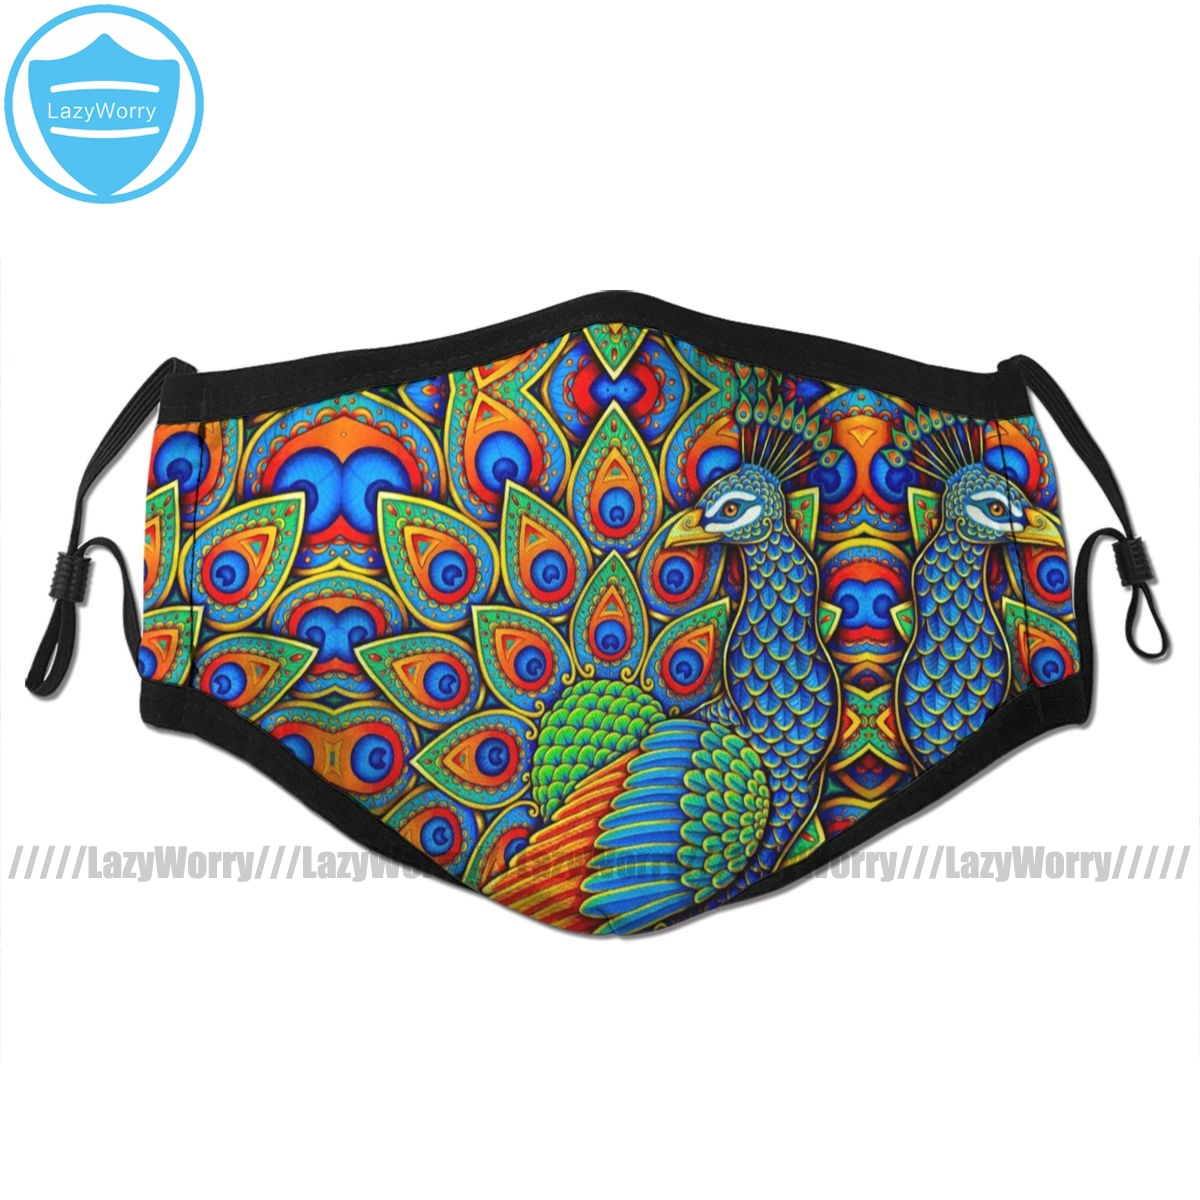 Peacock Mouth Face Mask Colorful Paisley Peacock Rainbow Bird Facial Mask Cool Fashion With 2 Filters For Adult